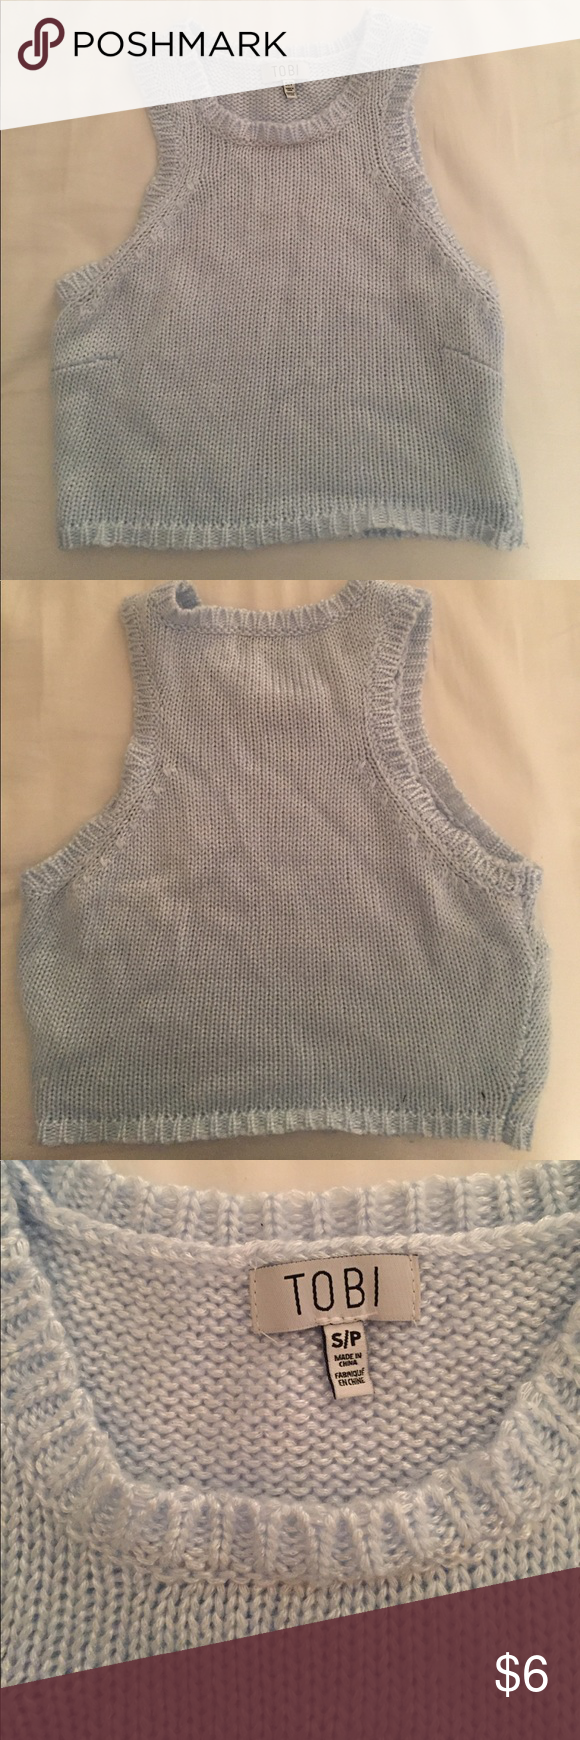 Tobi Knit Crop Top Light blue crop top featuring a sweater-style knit. Perfect summer top! Tobi Tops Crop Tops